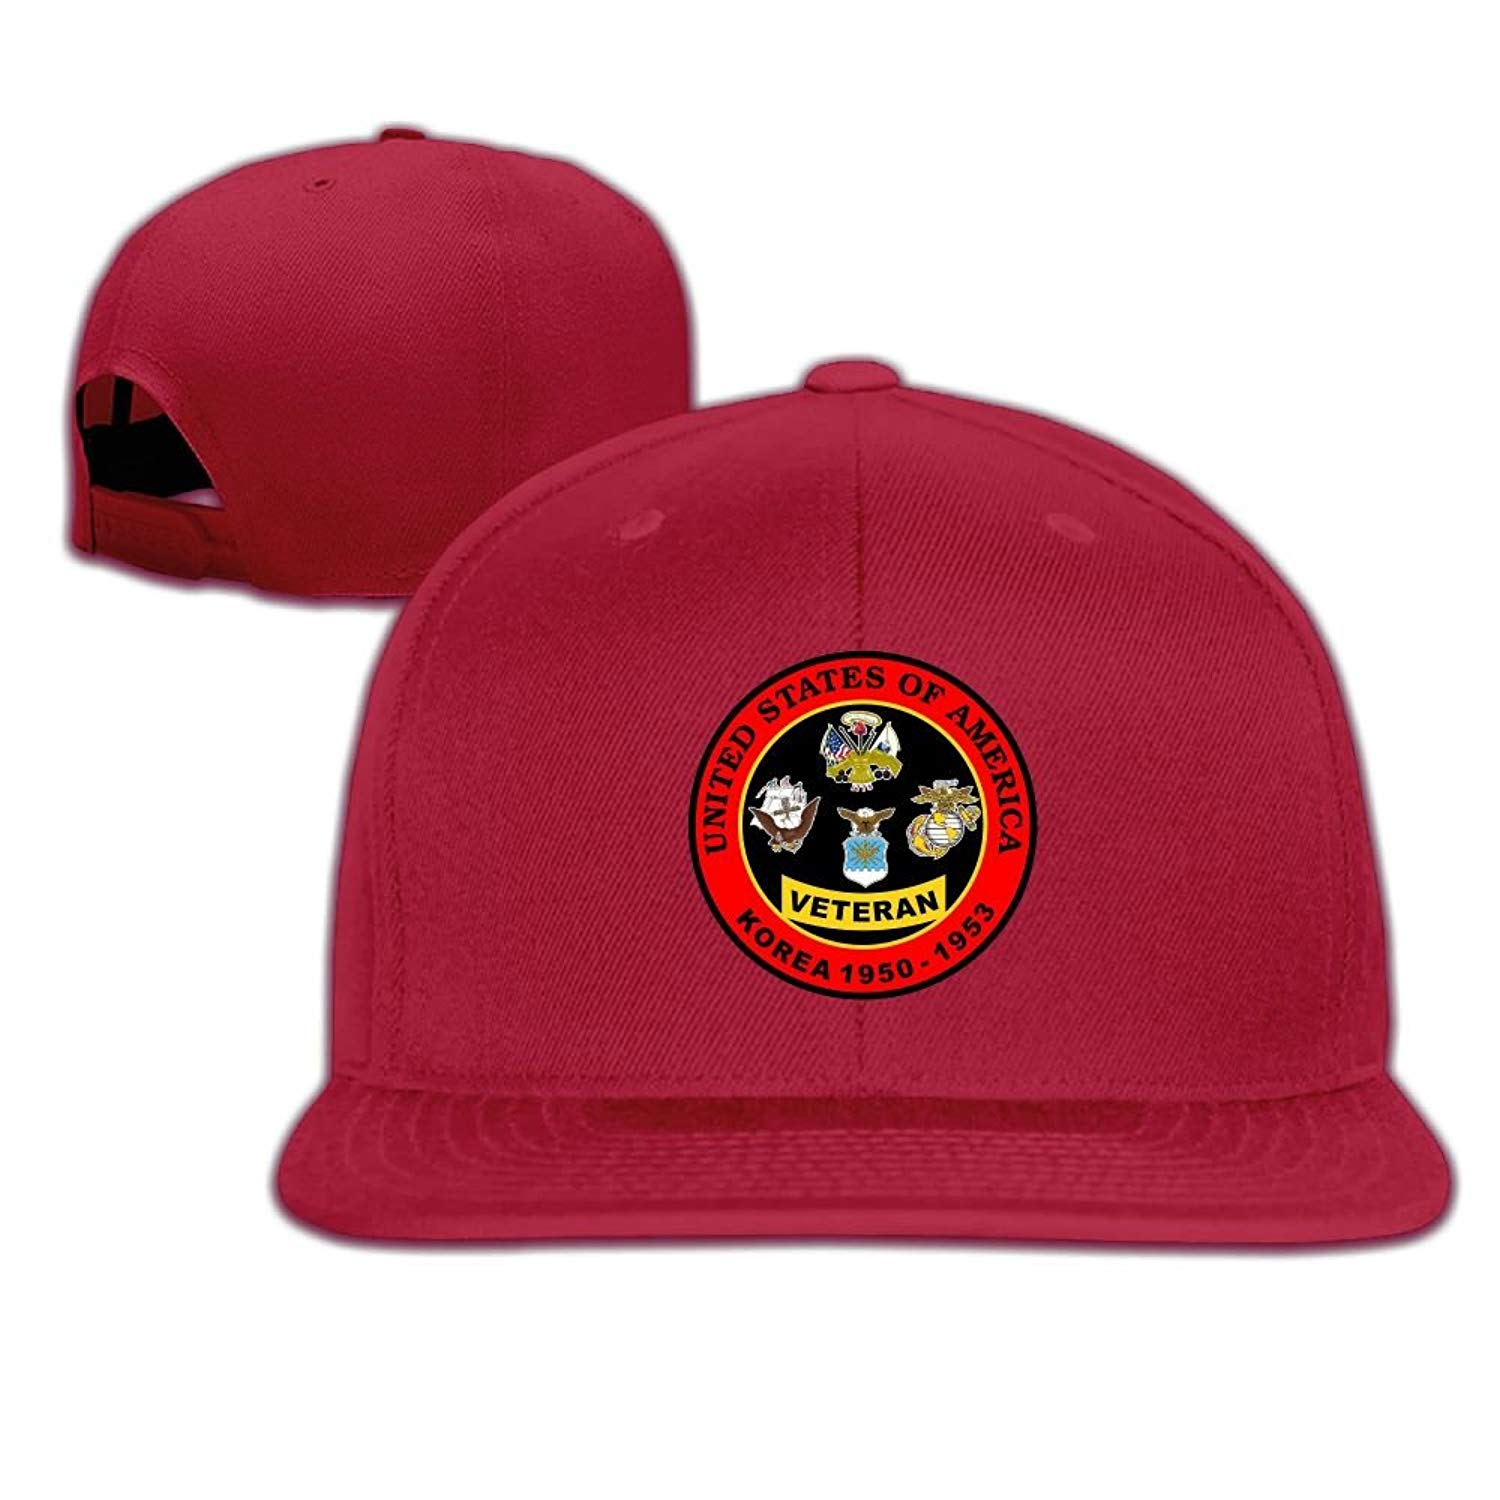 Adjustable Baseball Hat Snapbacks Hat Baseball Caps Trucker Hat - United States Army Marine Air Force Navy Korea War Veteran